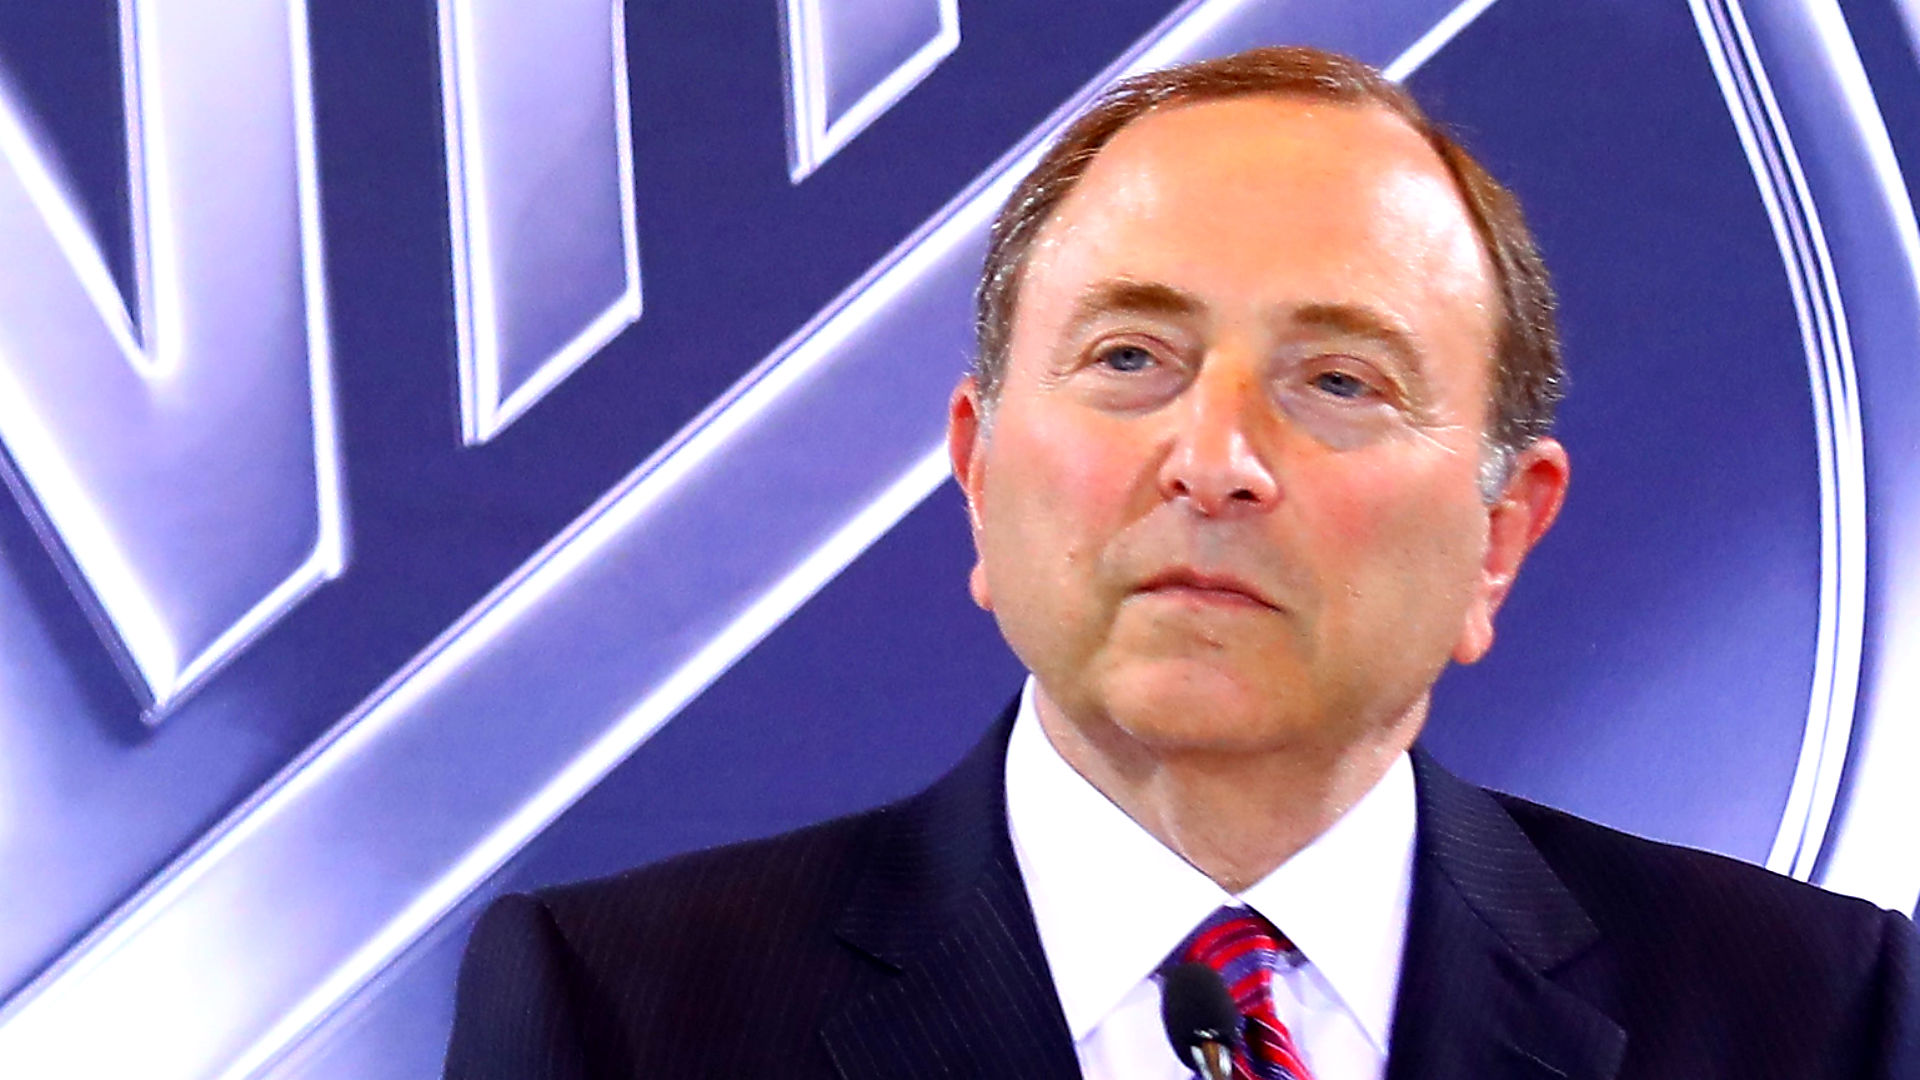 bettman-gary062316-getty-ftr.jpg